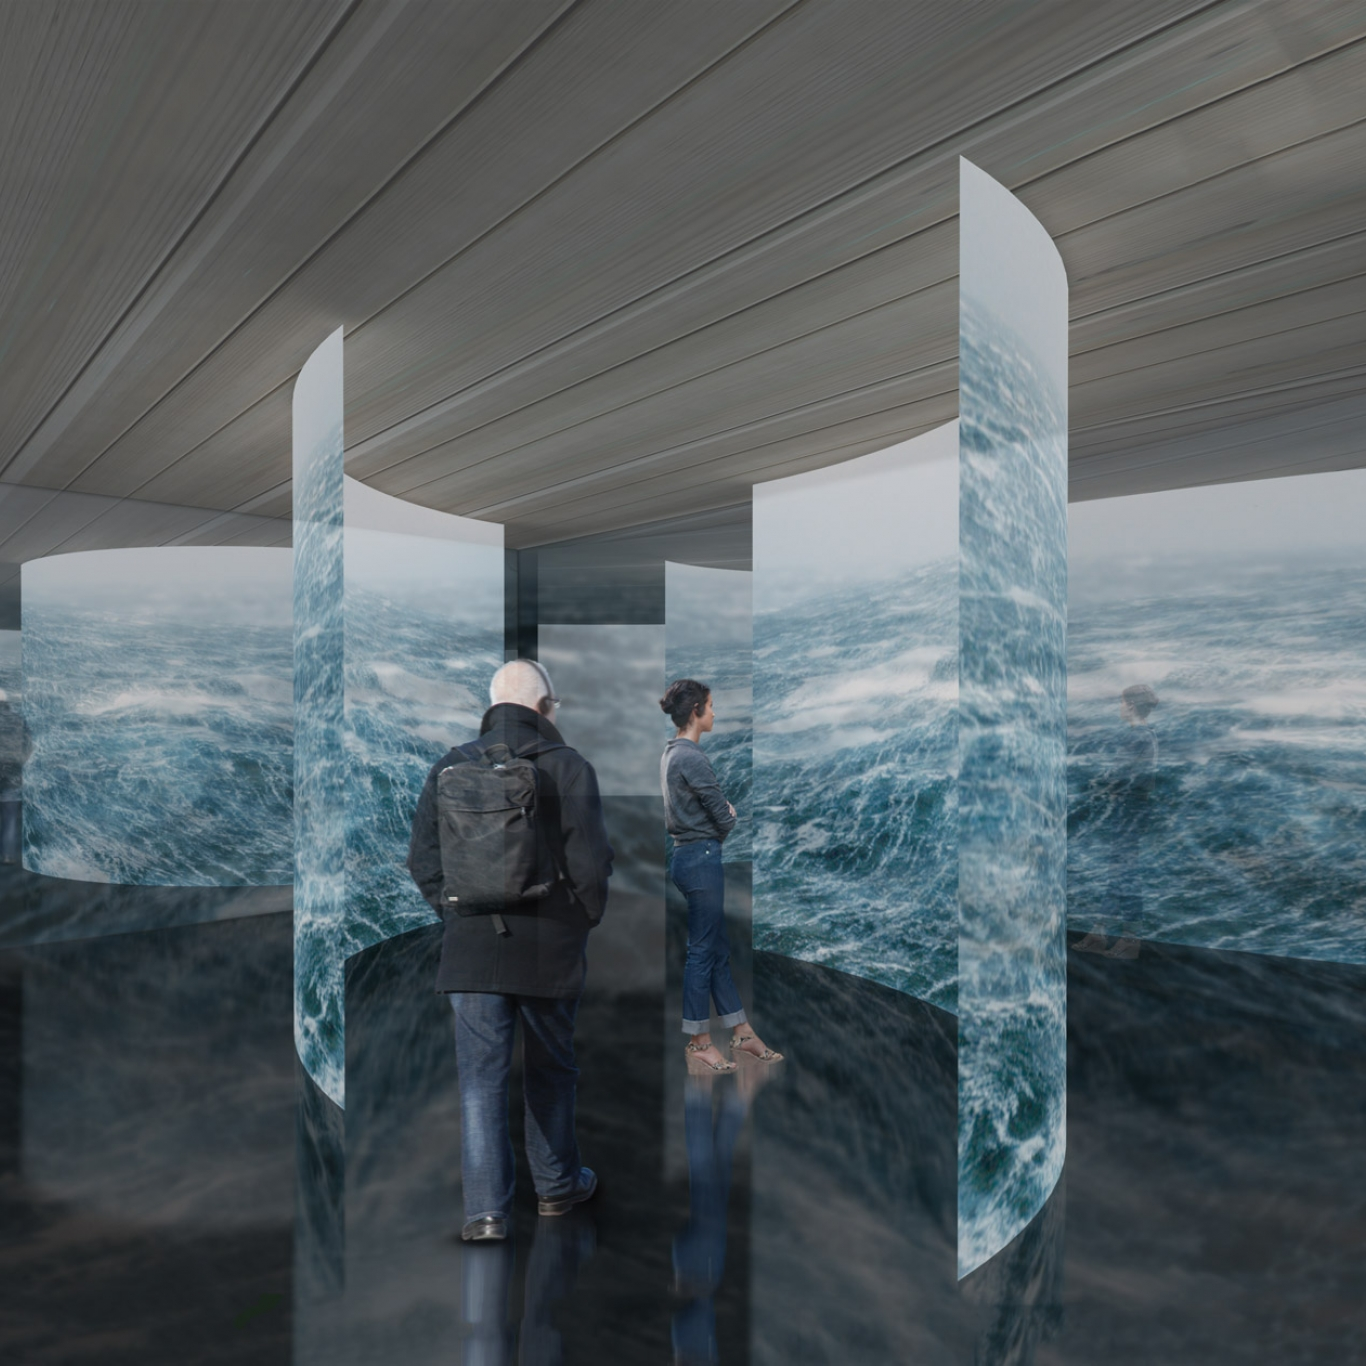 Artist's rendition of series of curved blue ceiling to floor panels with people in middle for scale.